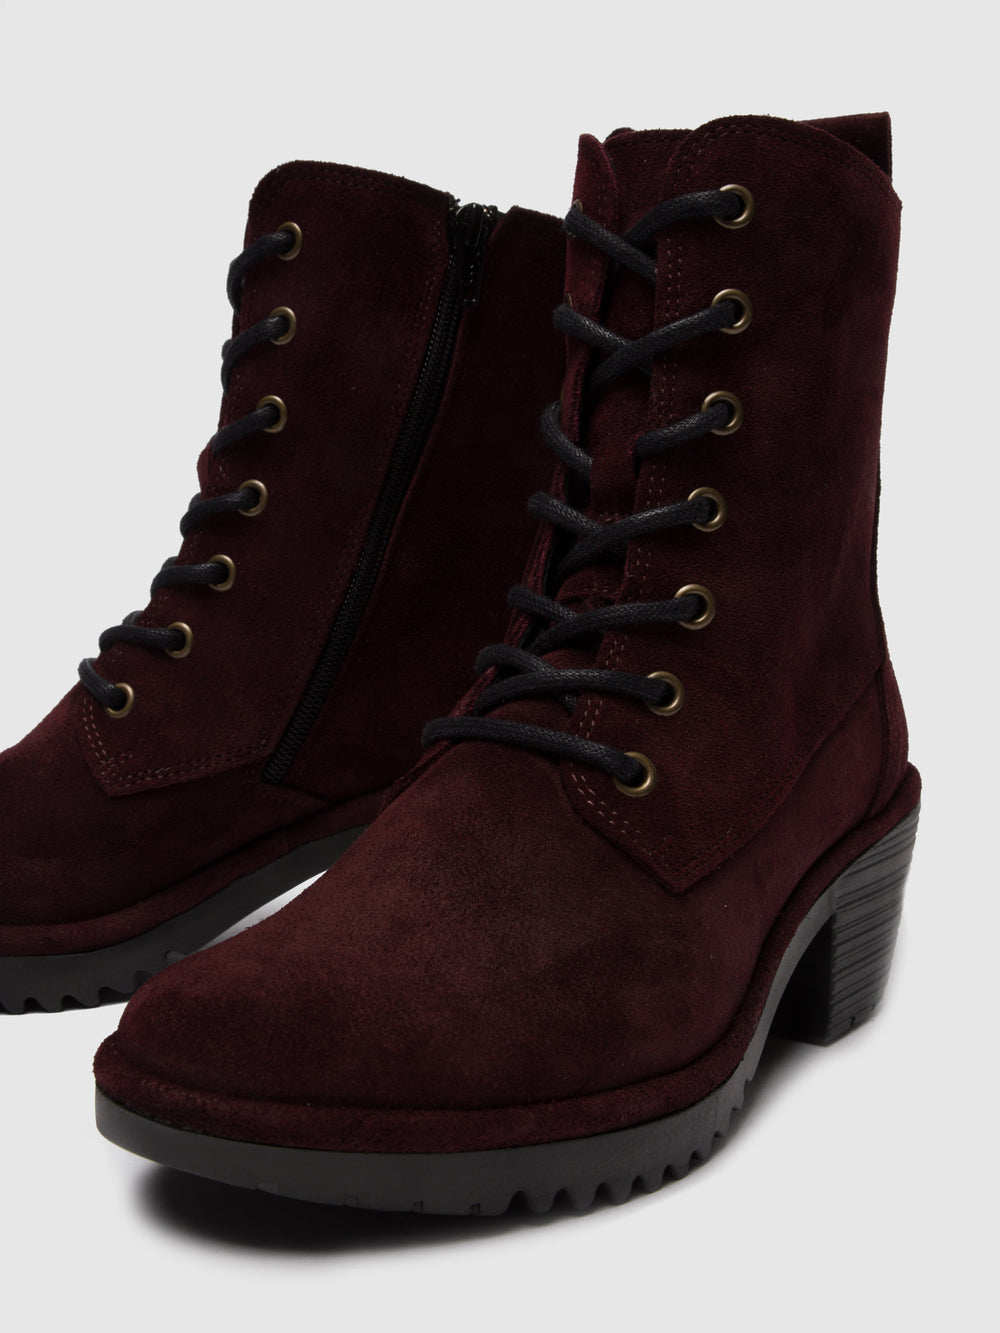 Lace-up Ankle Boots WEBE244FLY COLUMBIA WINE